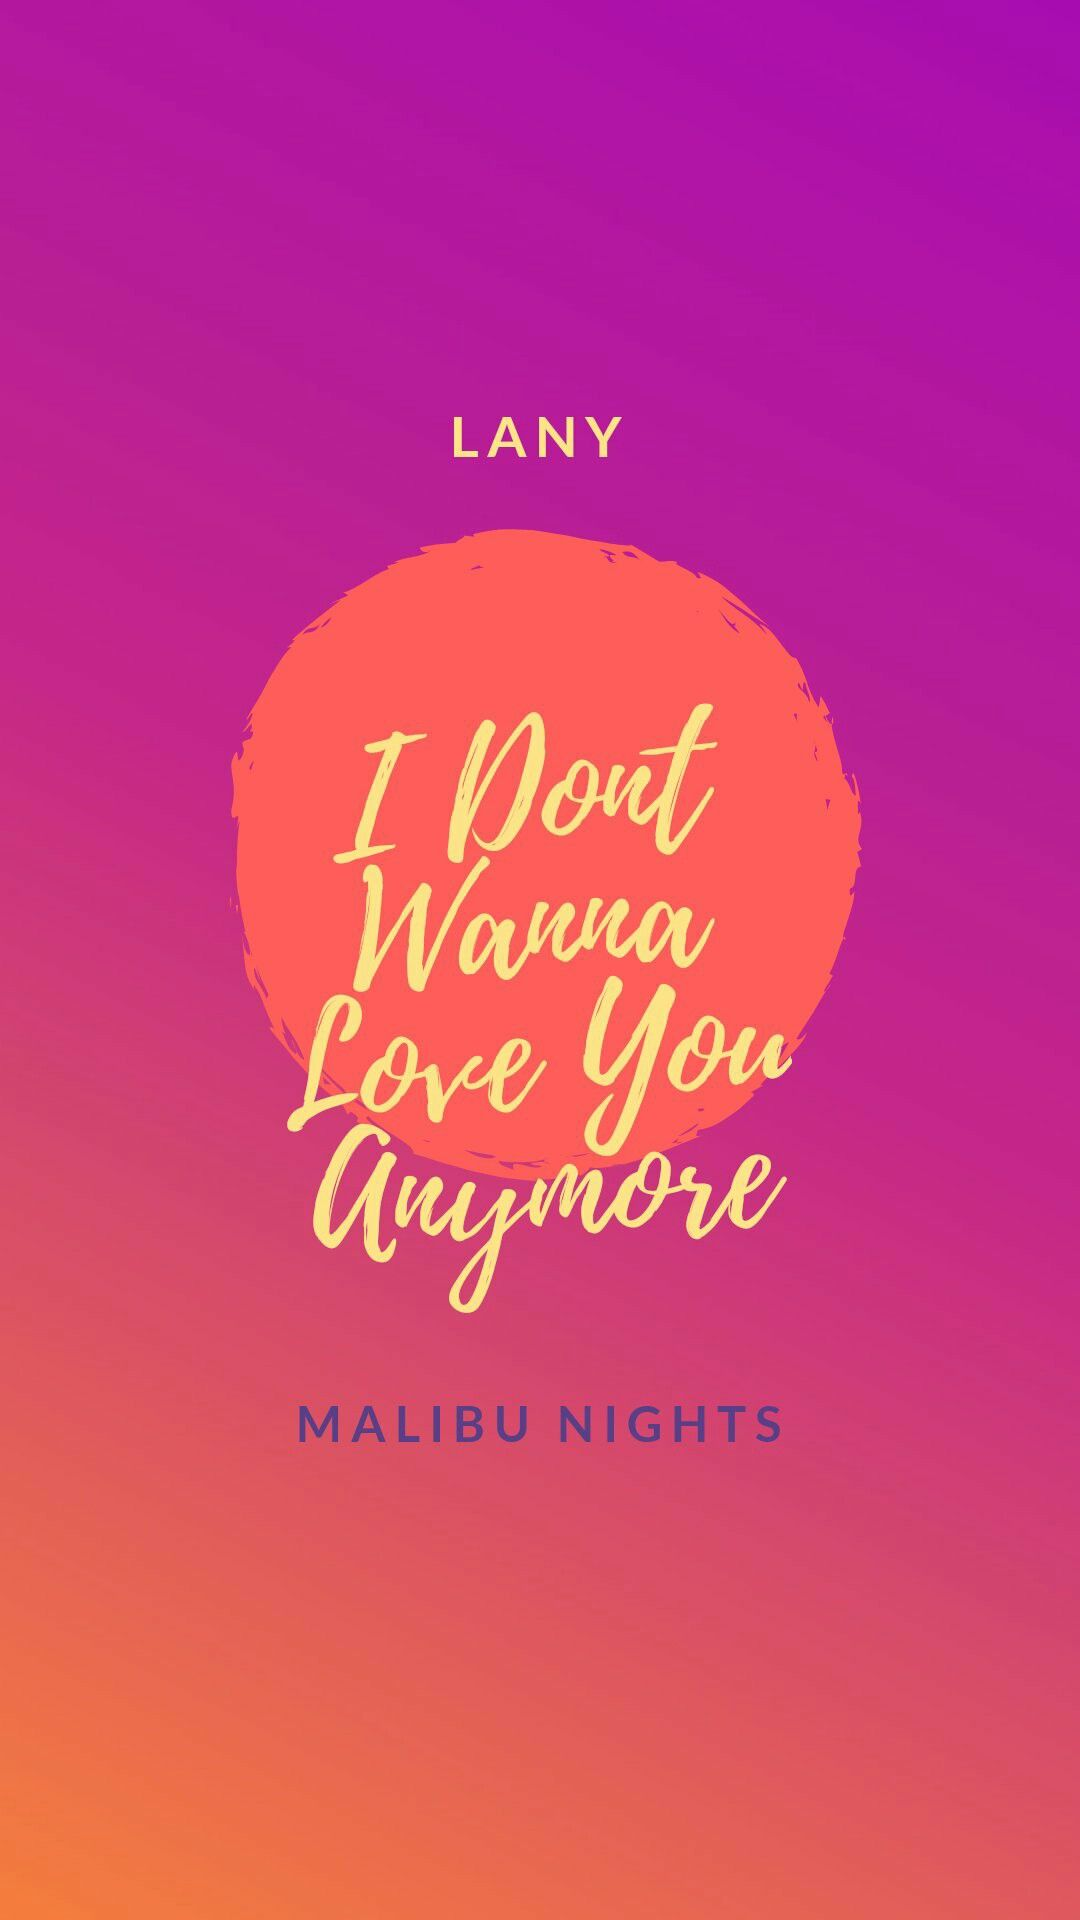 Pin By Jim4 On Lany Pinterest Lany